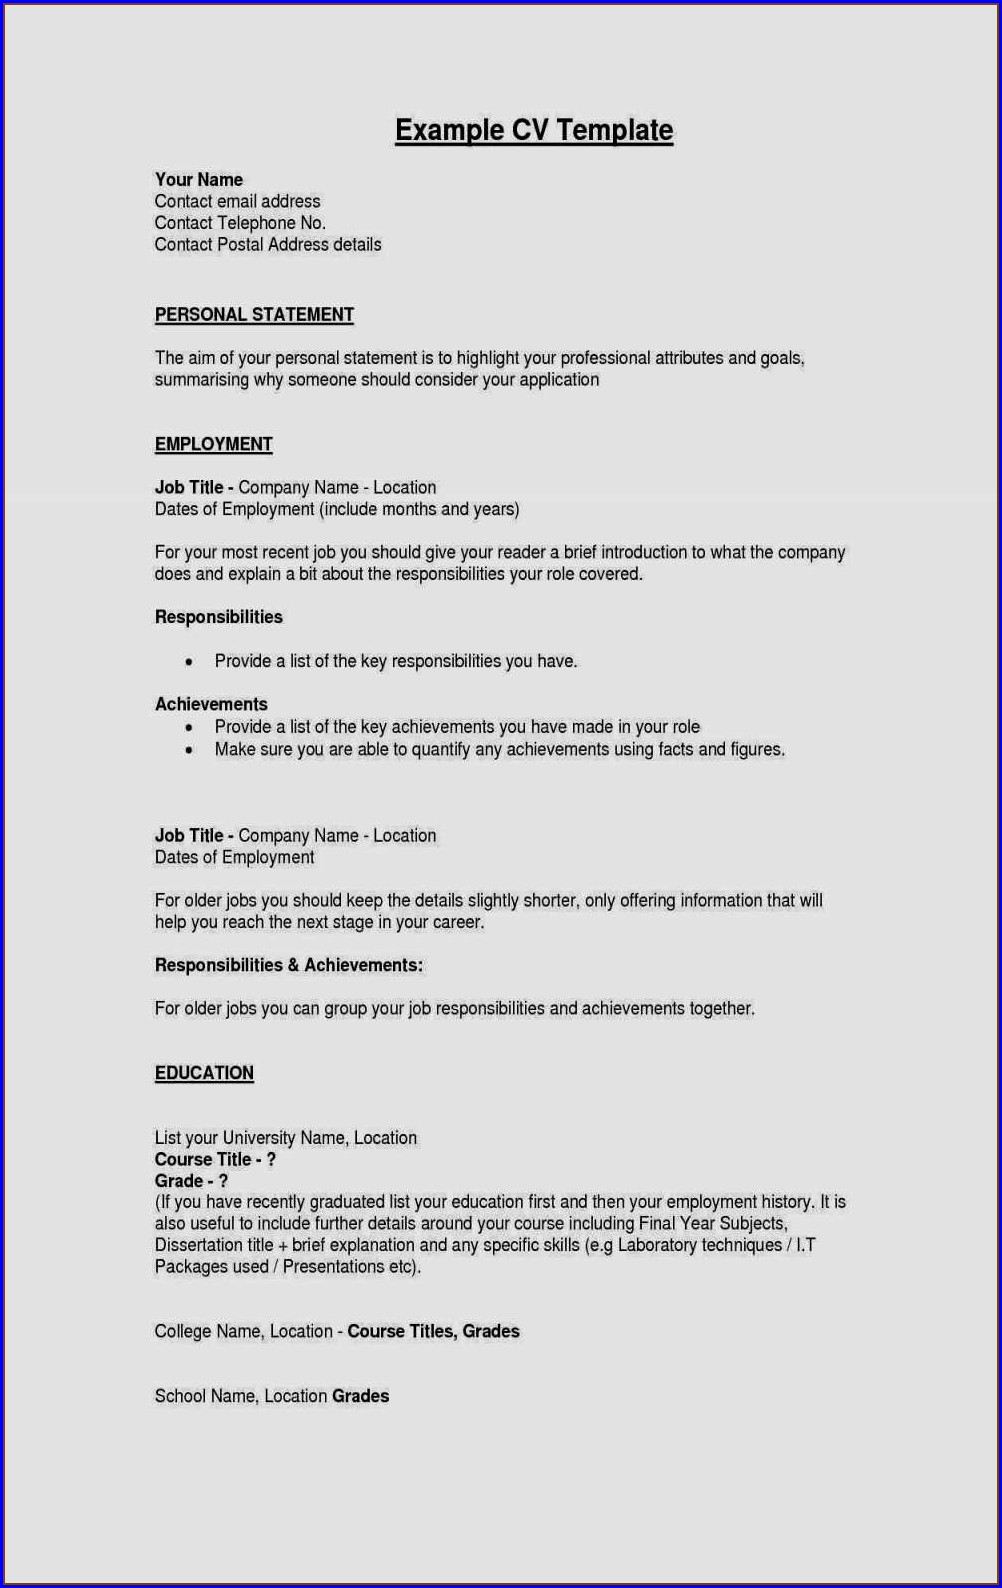 Curriculum Vitae Example Pdf Download